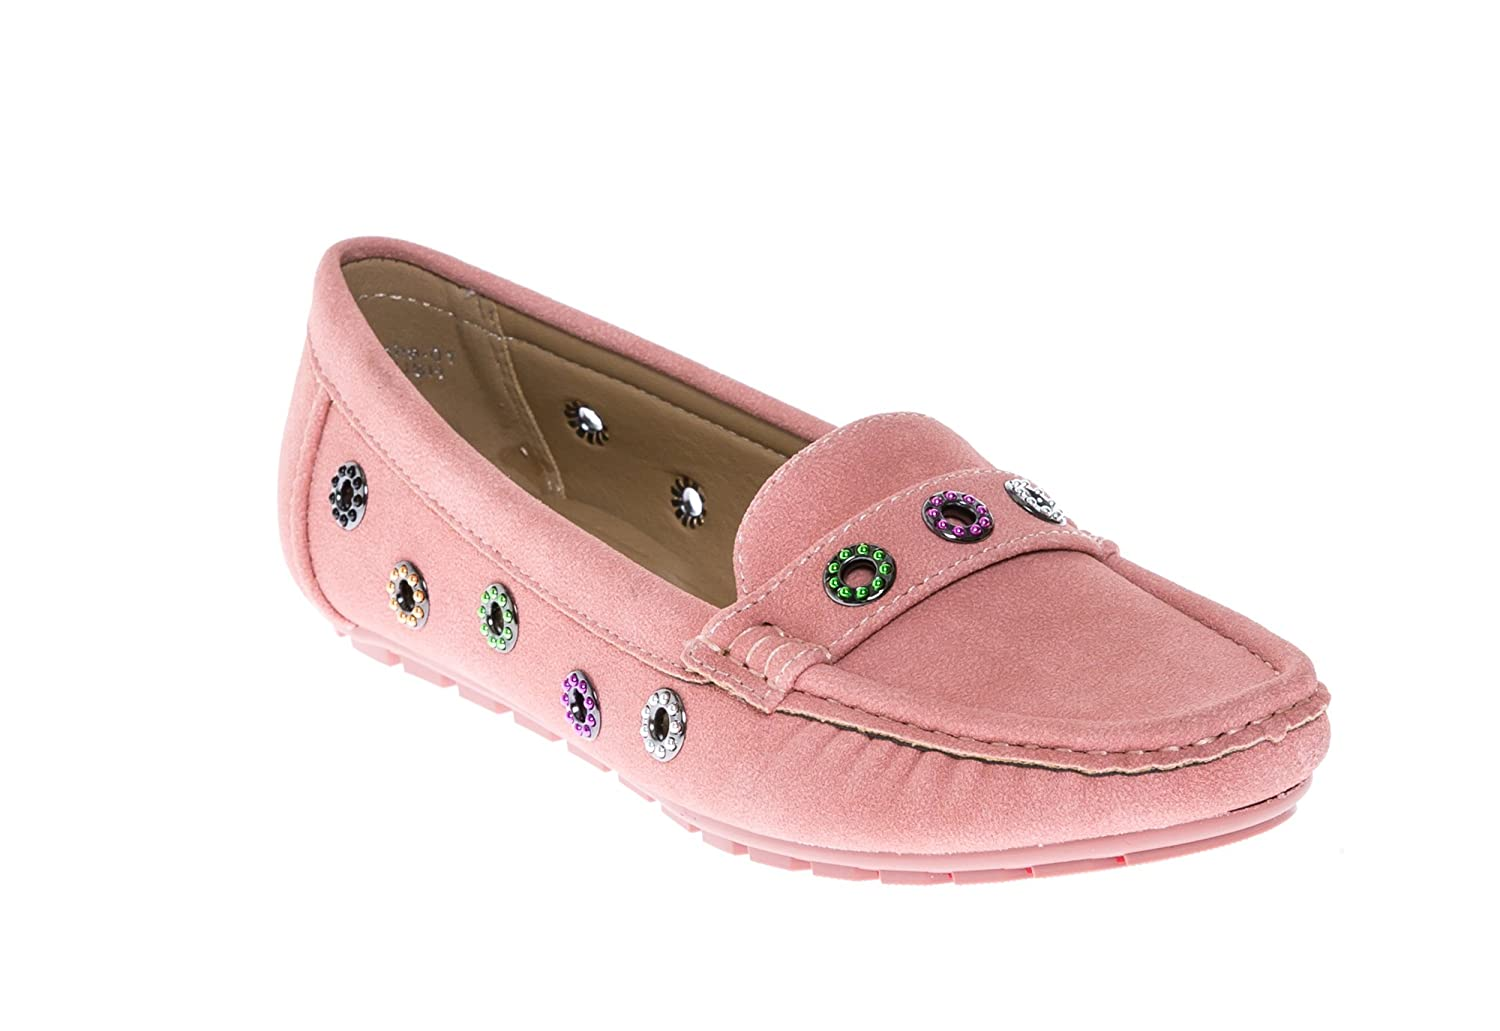 8c246cb04c3 CALICO KIKI Women s Comfort Faux Suede Studded Accent Slip-on Moccasins  Penny Loafers Boat Shoes Flats